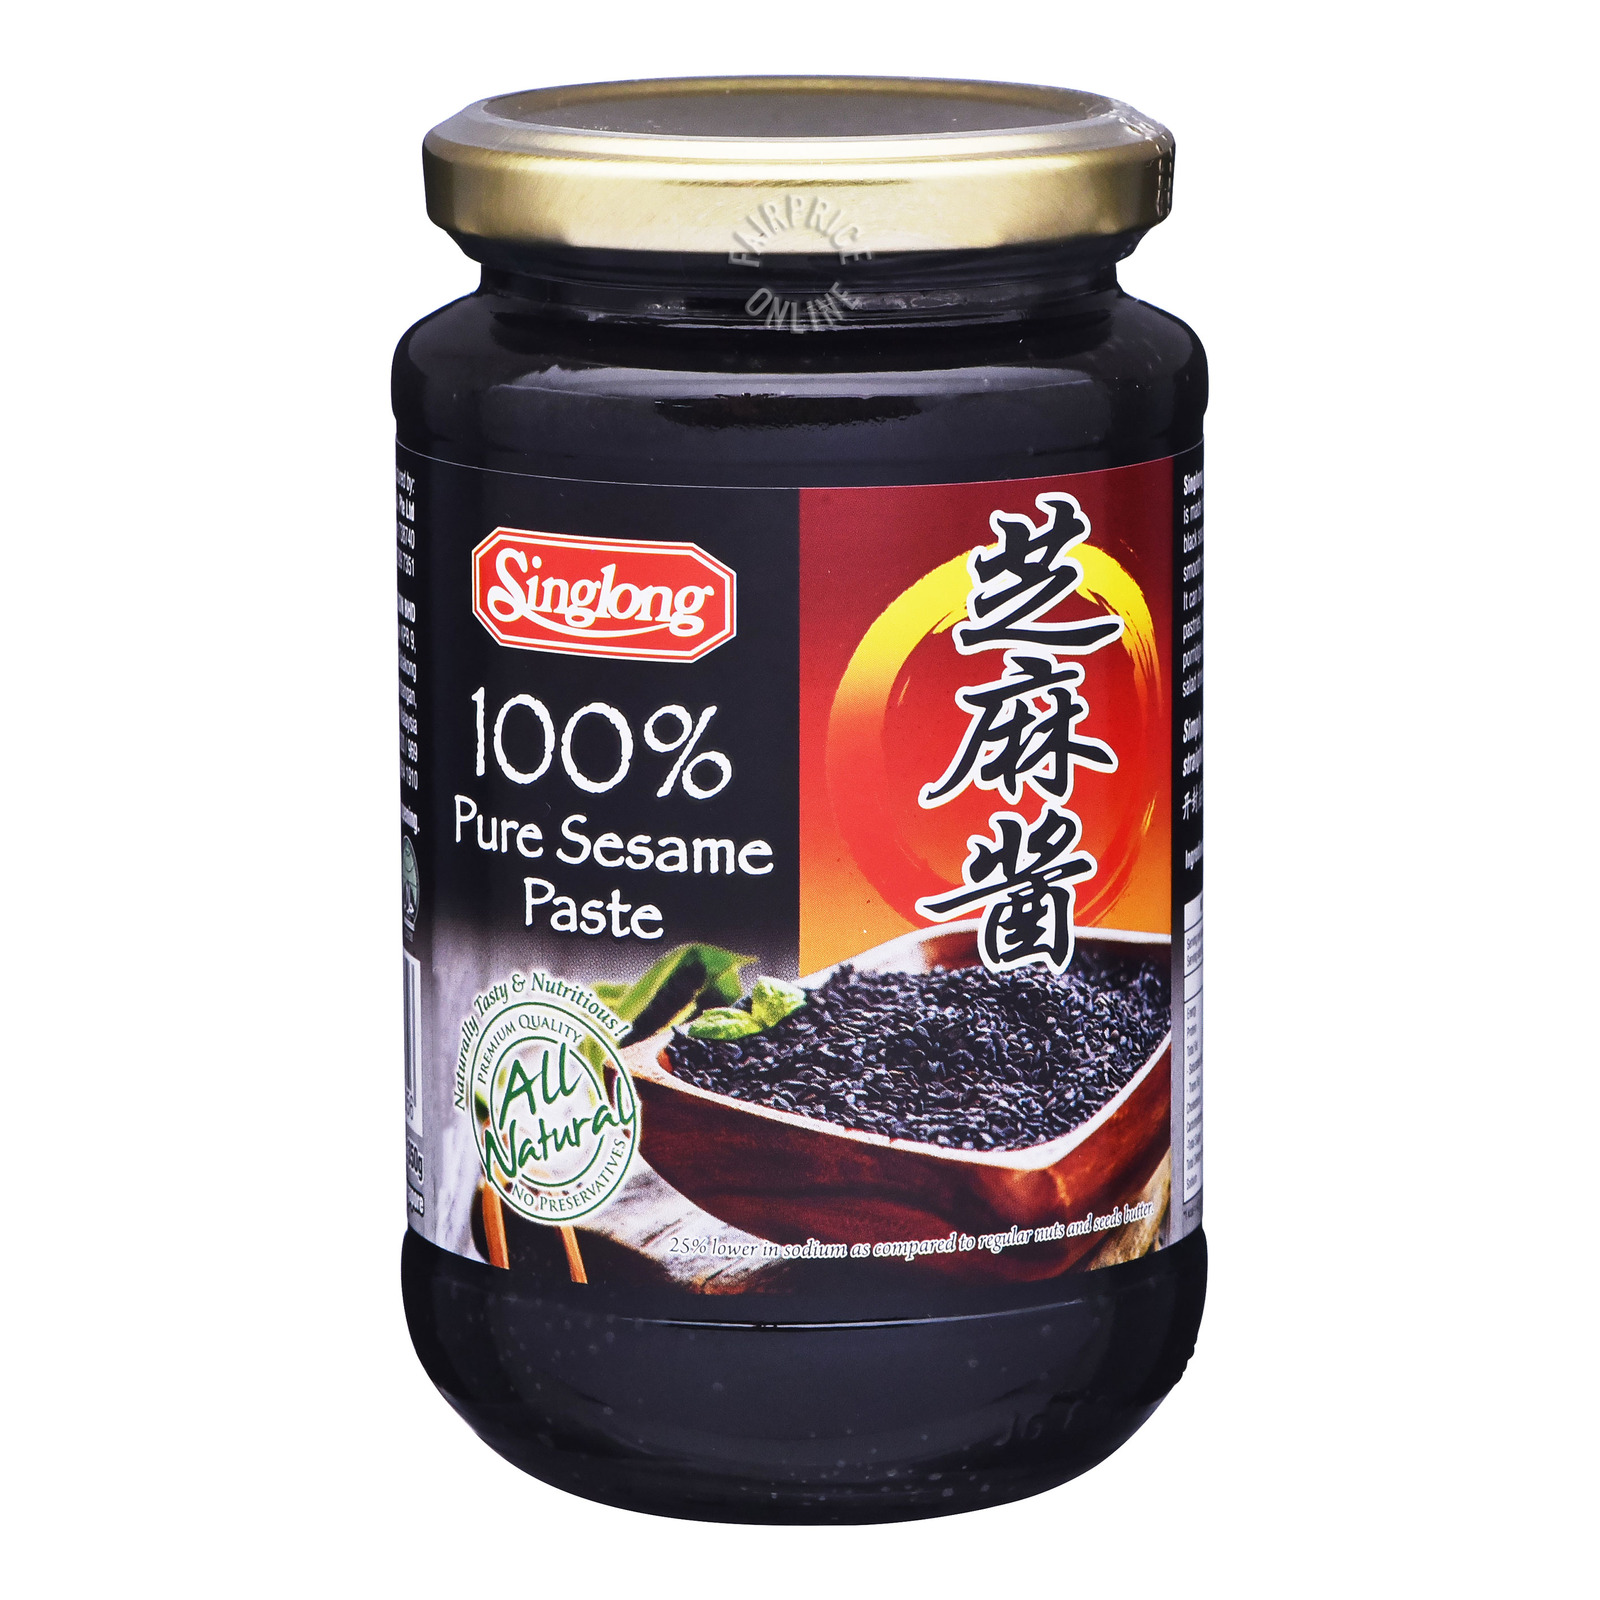 Singlong 100% Pure Sesame Paste